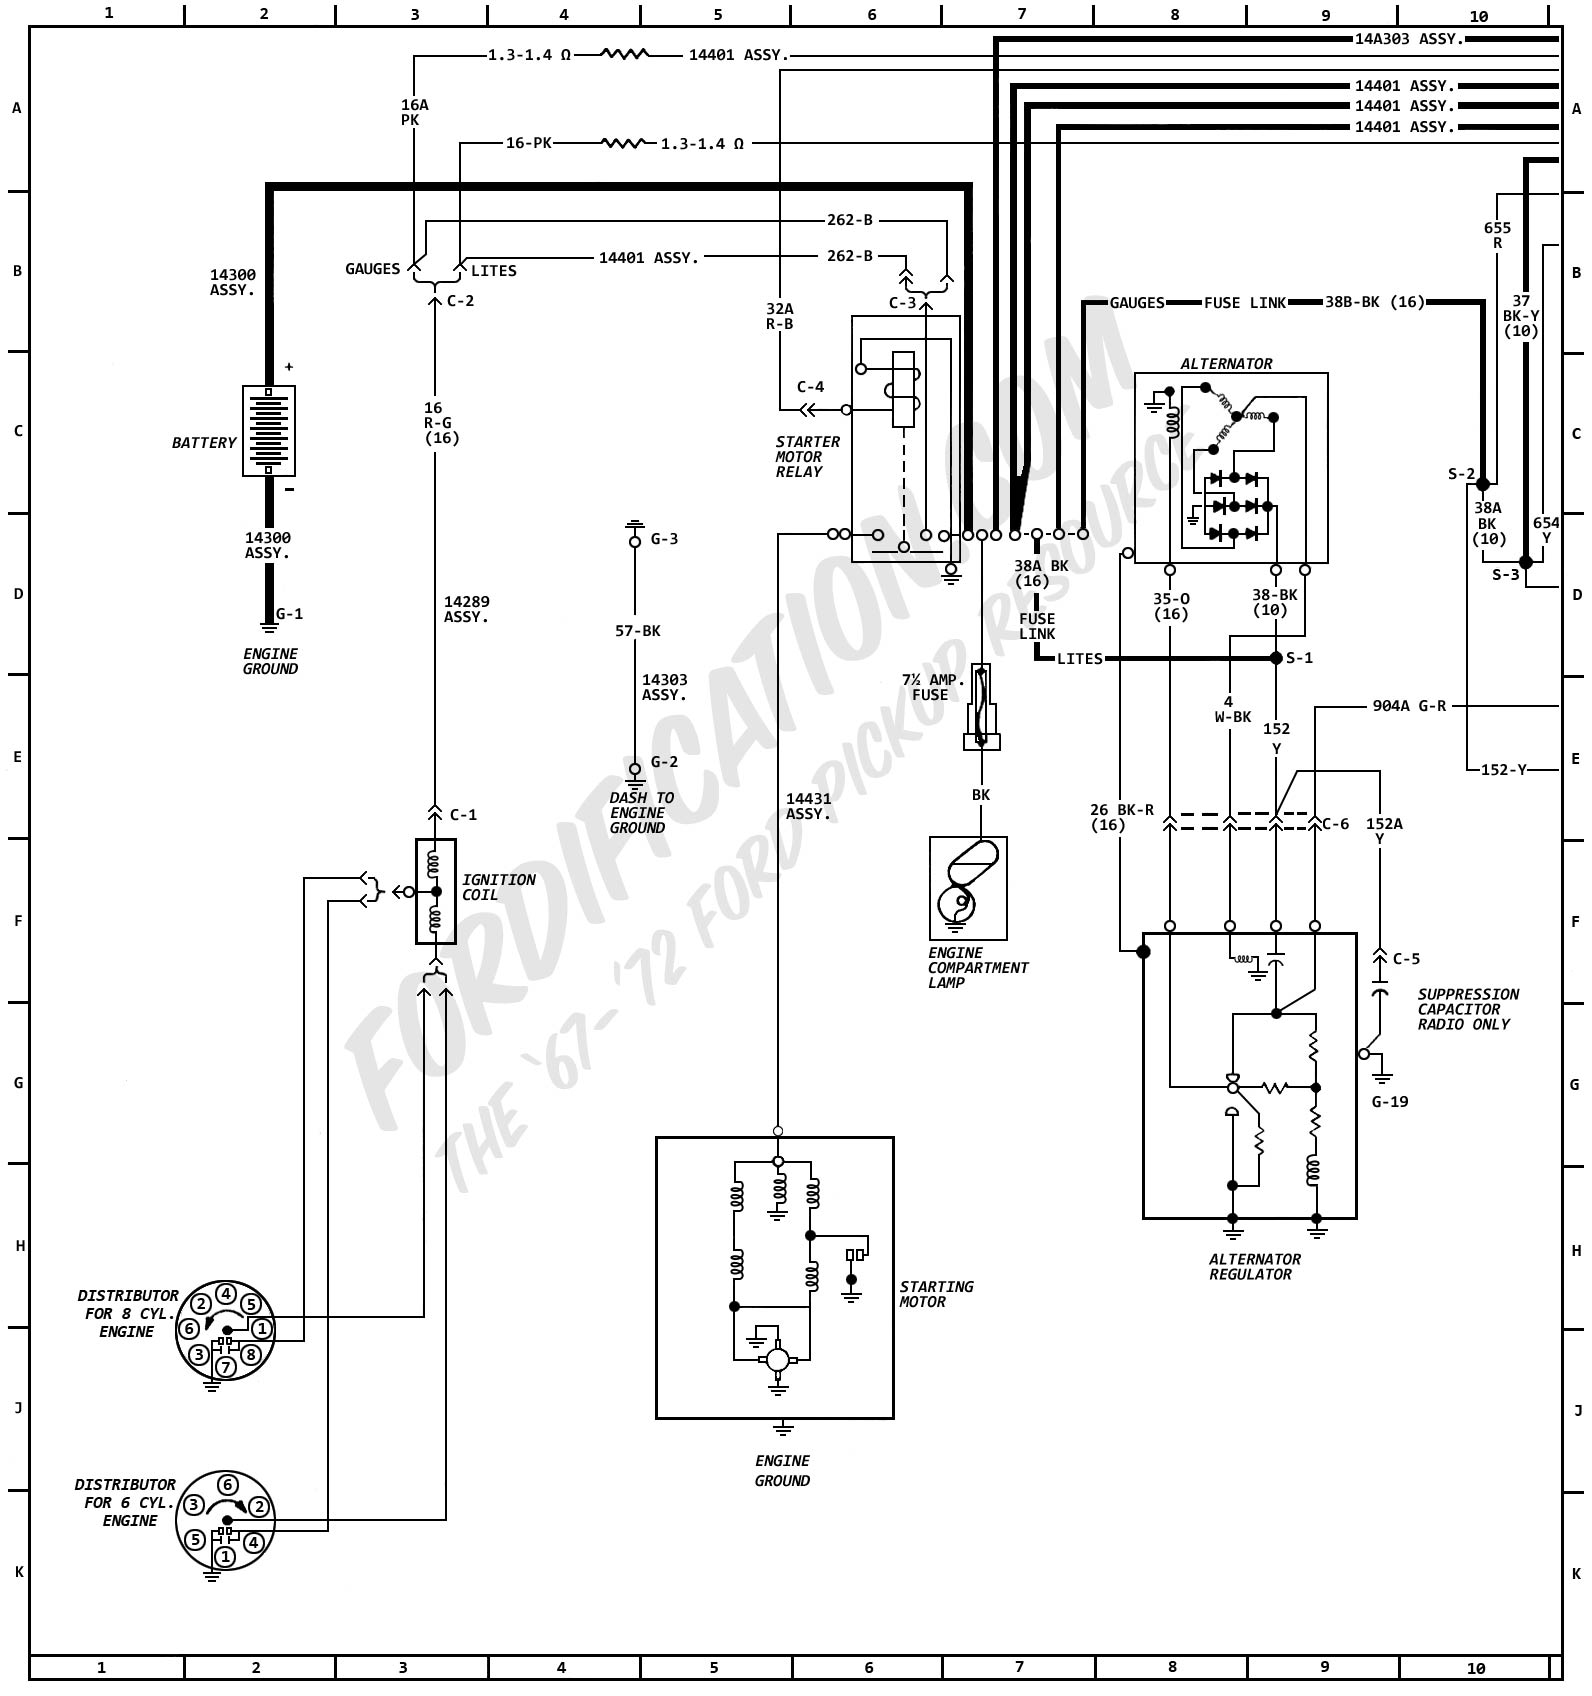 1972MasterWiring_01 1972 ford truck wiring diagrams fordification com 1971 ford f250 wiring diagram at bayanpartner.co